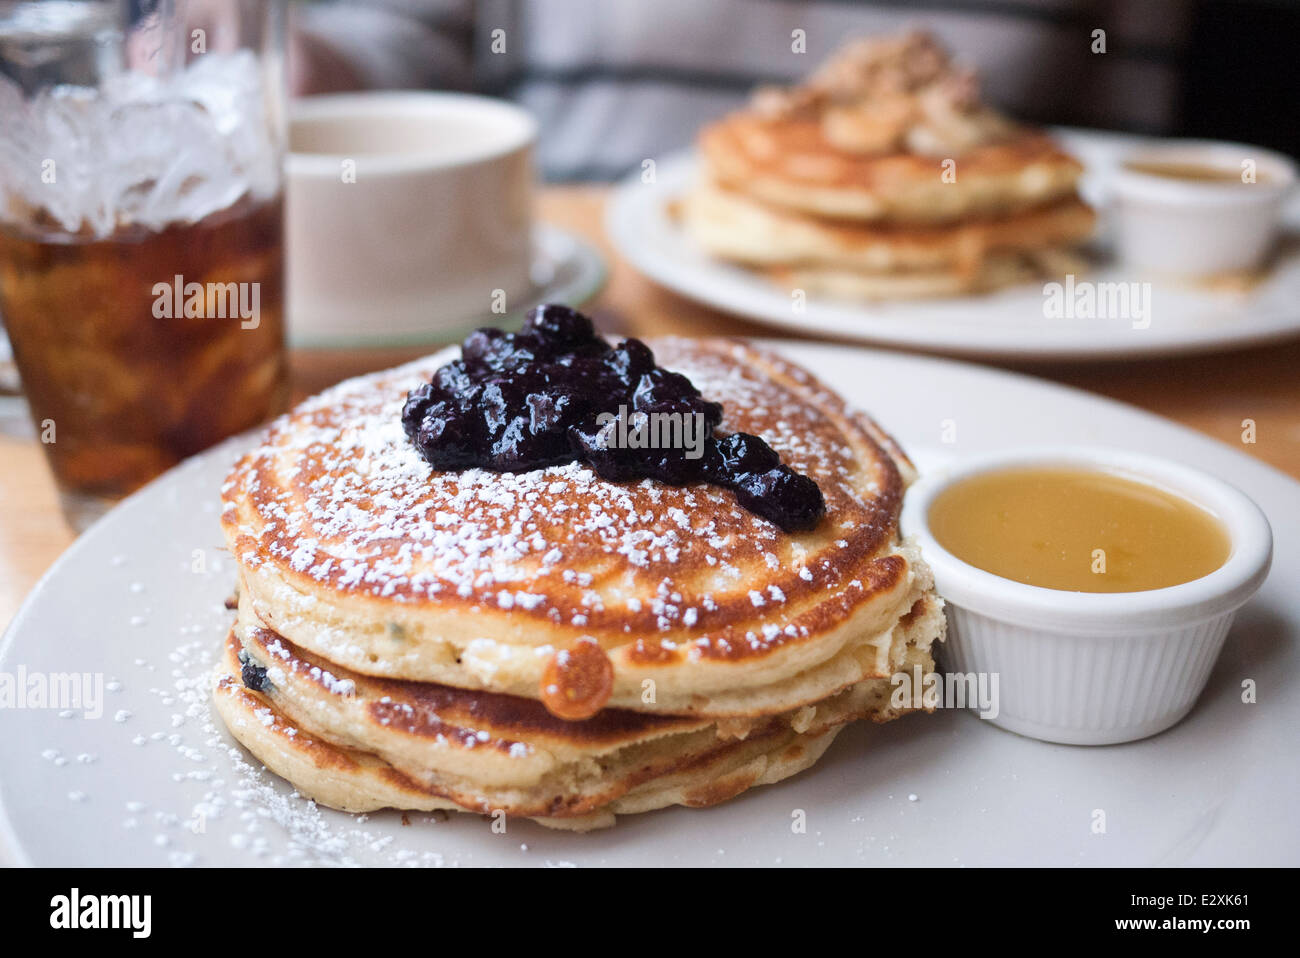 American Diner Pancakes High Resolution Stock Photography And Images Alamy